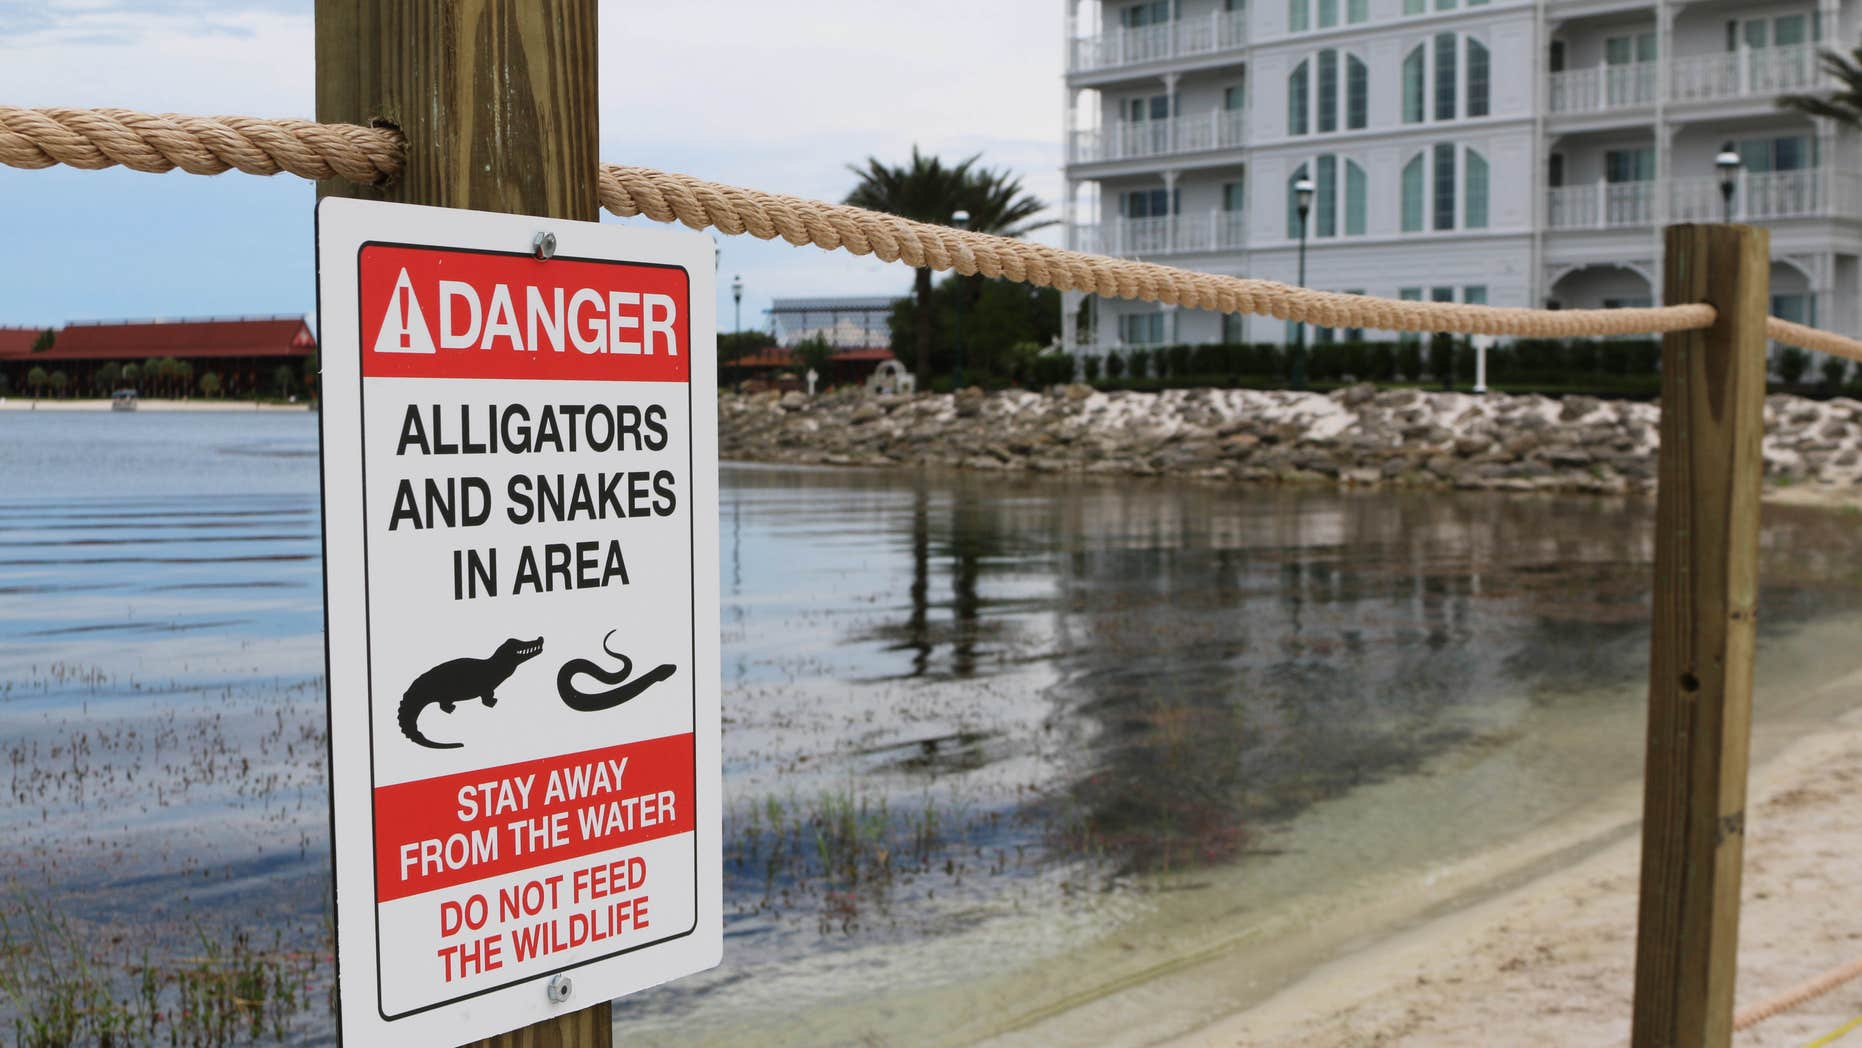 FILE - In this Friday, June, 17, 2016 file photo released by Walt Disney World Resort, a new sign is seen posted on a beach outside a hotel at a Walt Disney World resort in Lake Buena Vista, Fla., after a 2-year-old Nebraska boy killed by an alligator at Disney World.